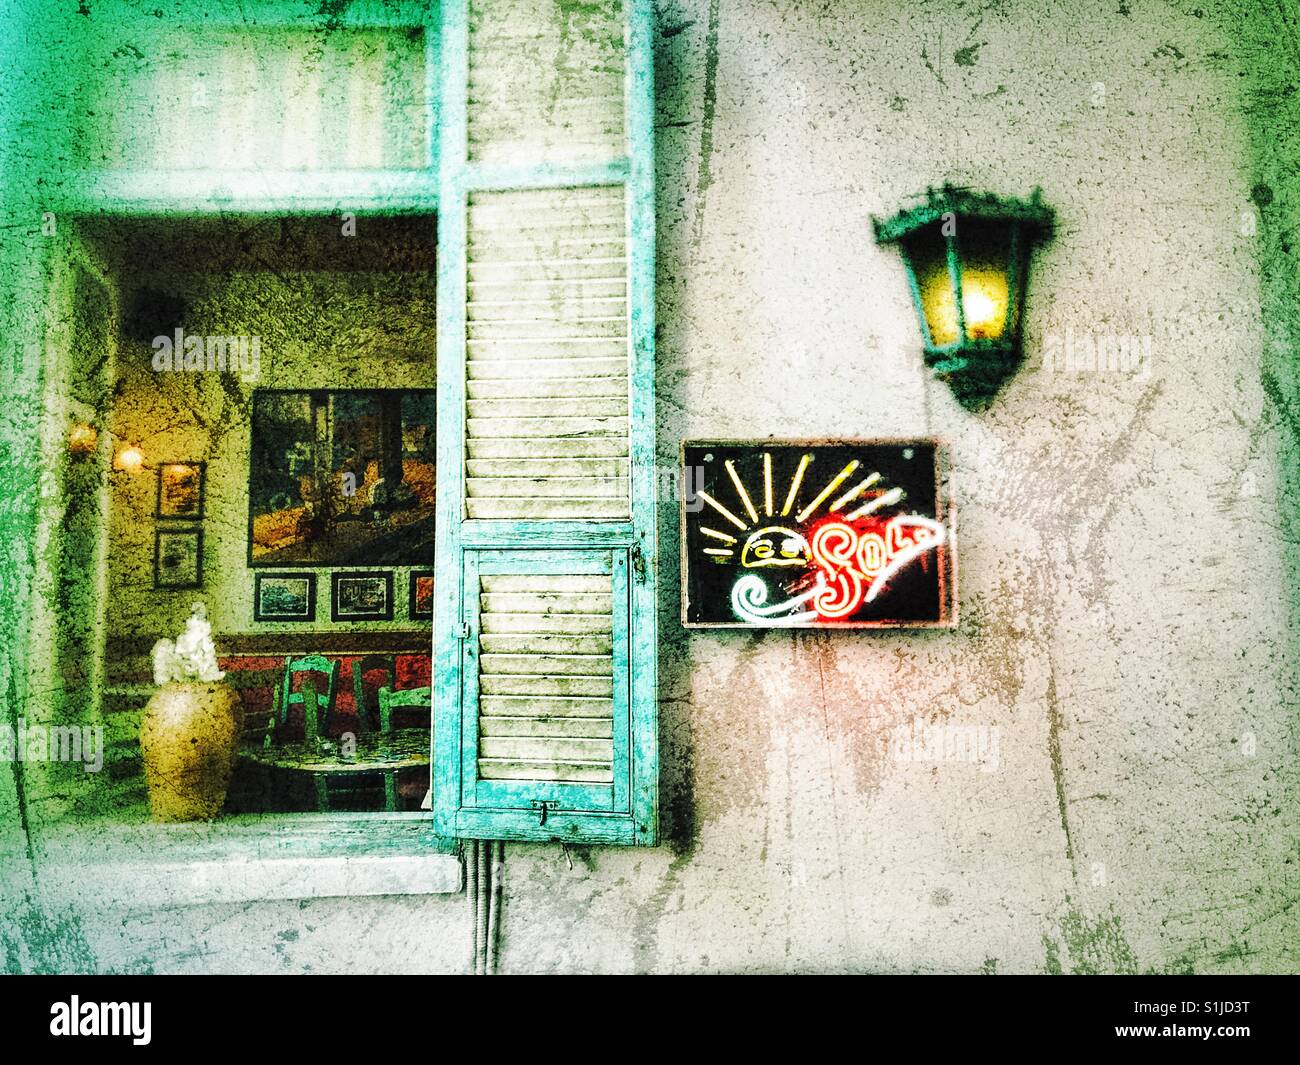 Cuban Restaurant Exterior Interior View In Thessaloniki Greece Stock Photo Alamy